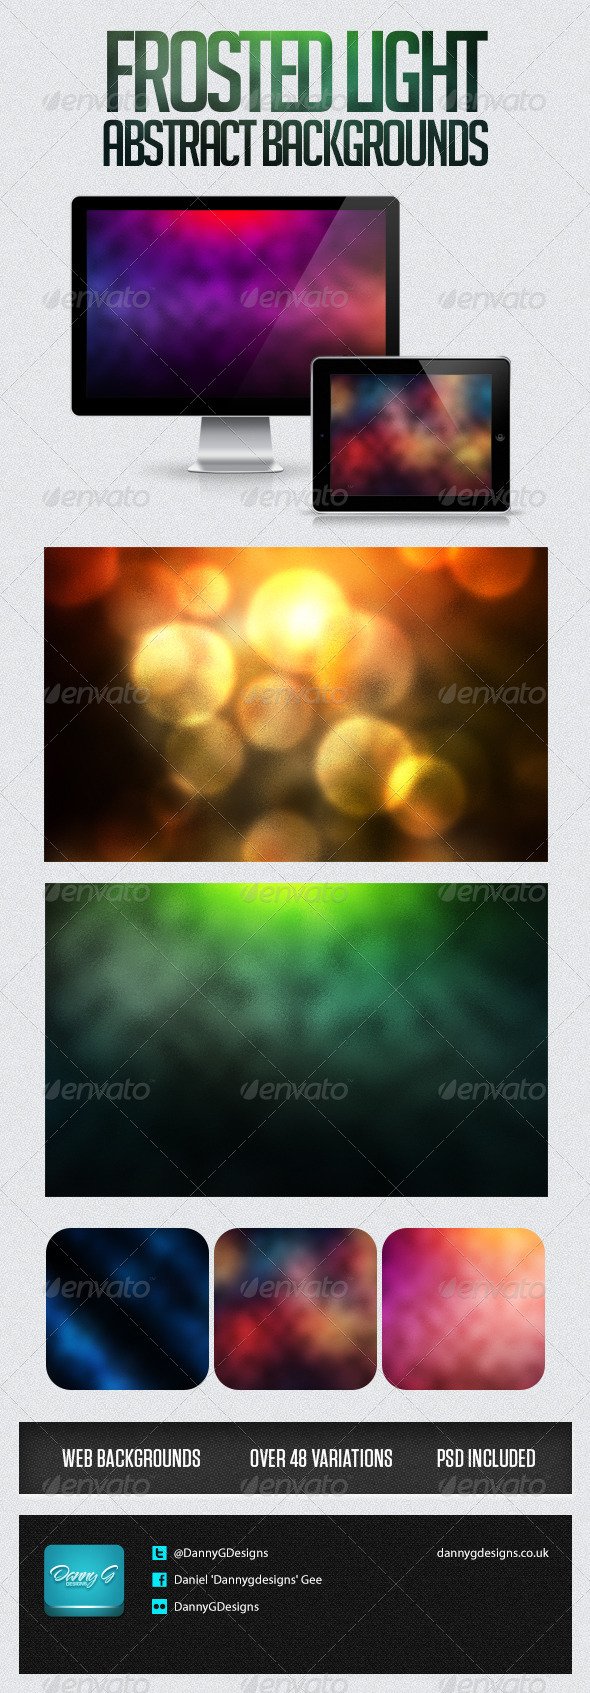 Frosted Light Abstract Background - Abstract Backgrounds